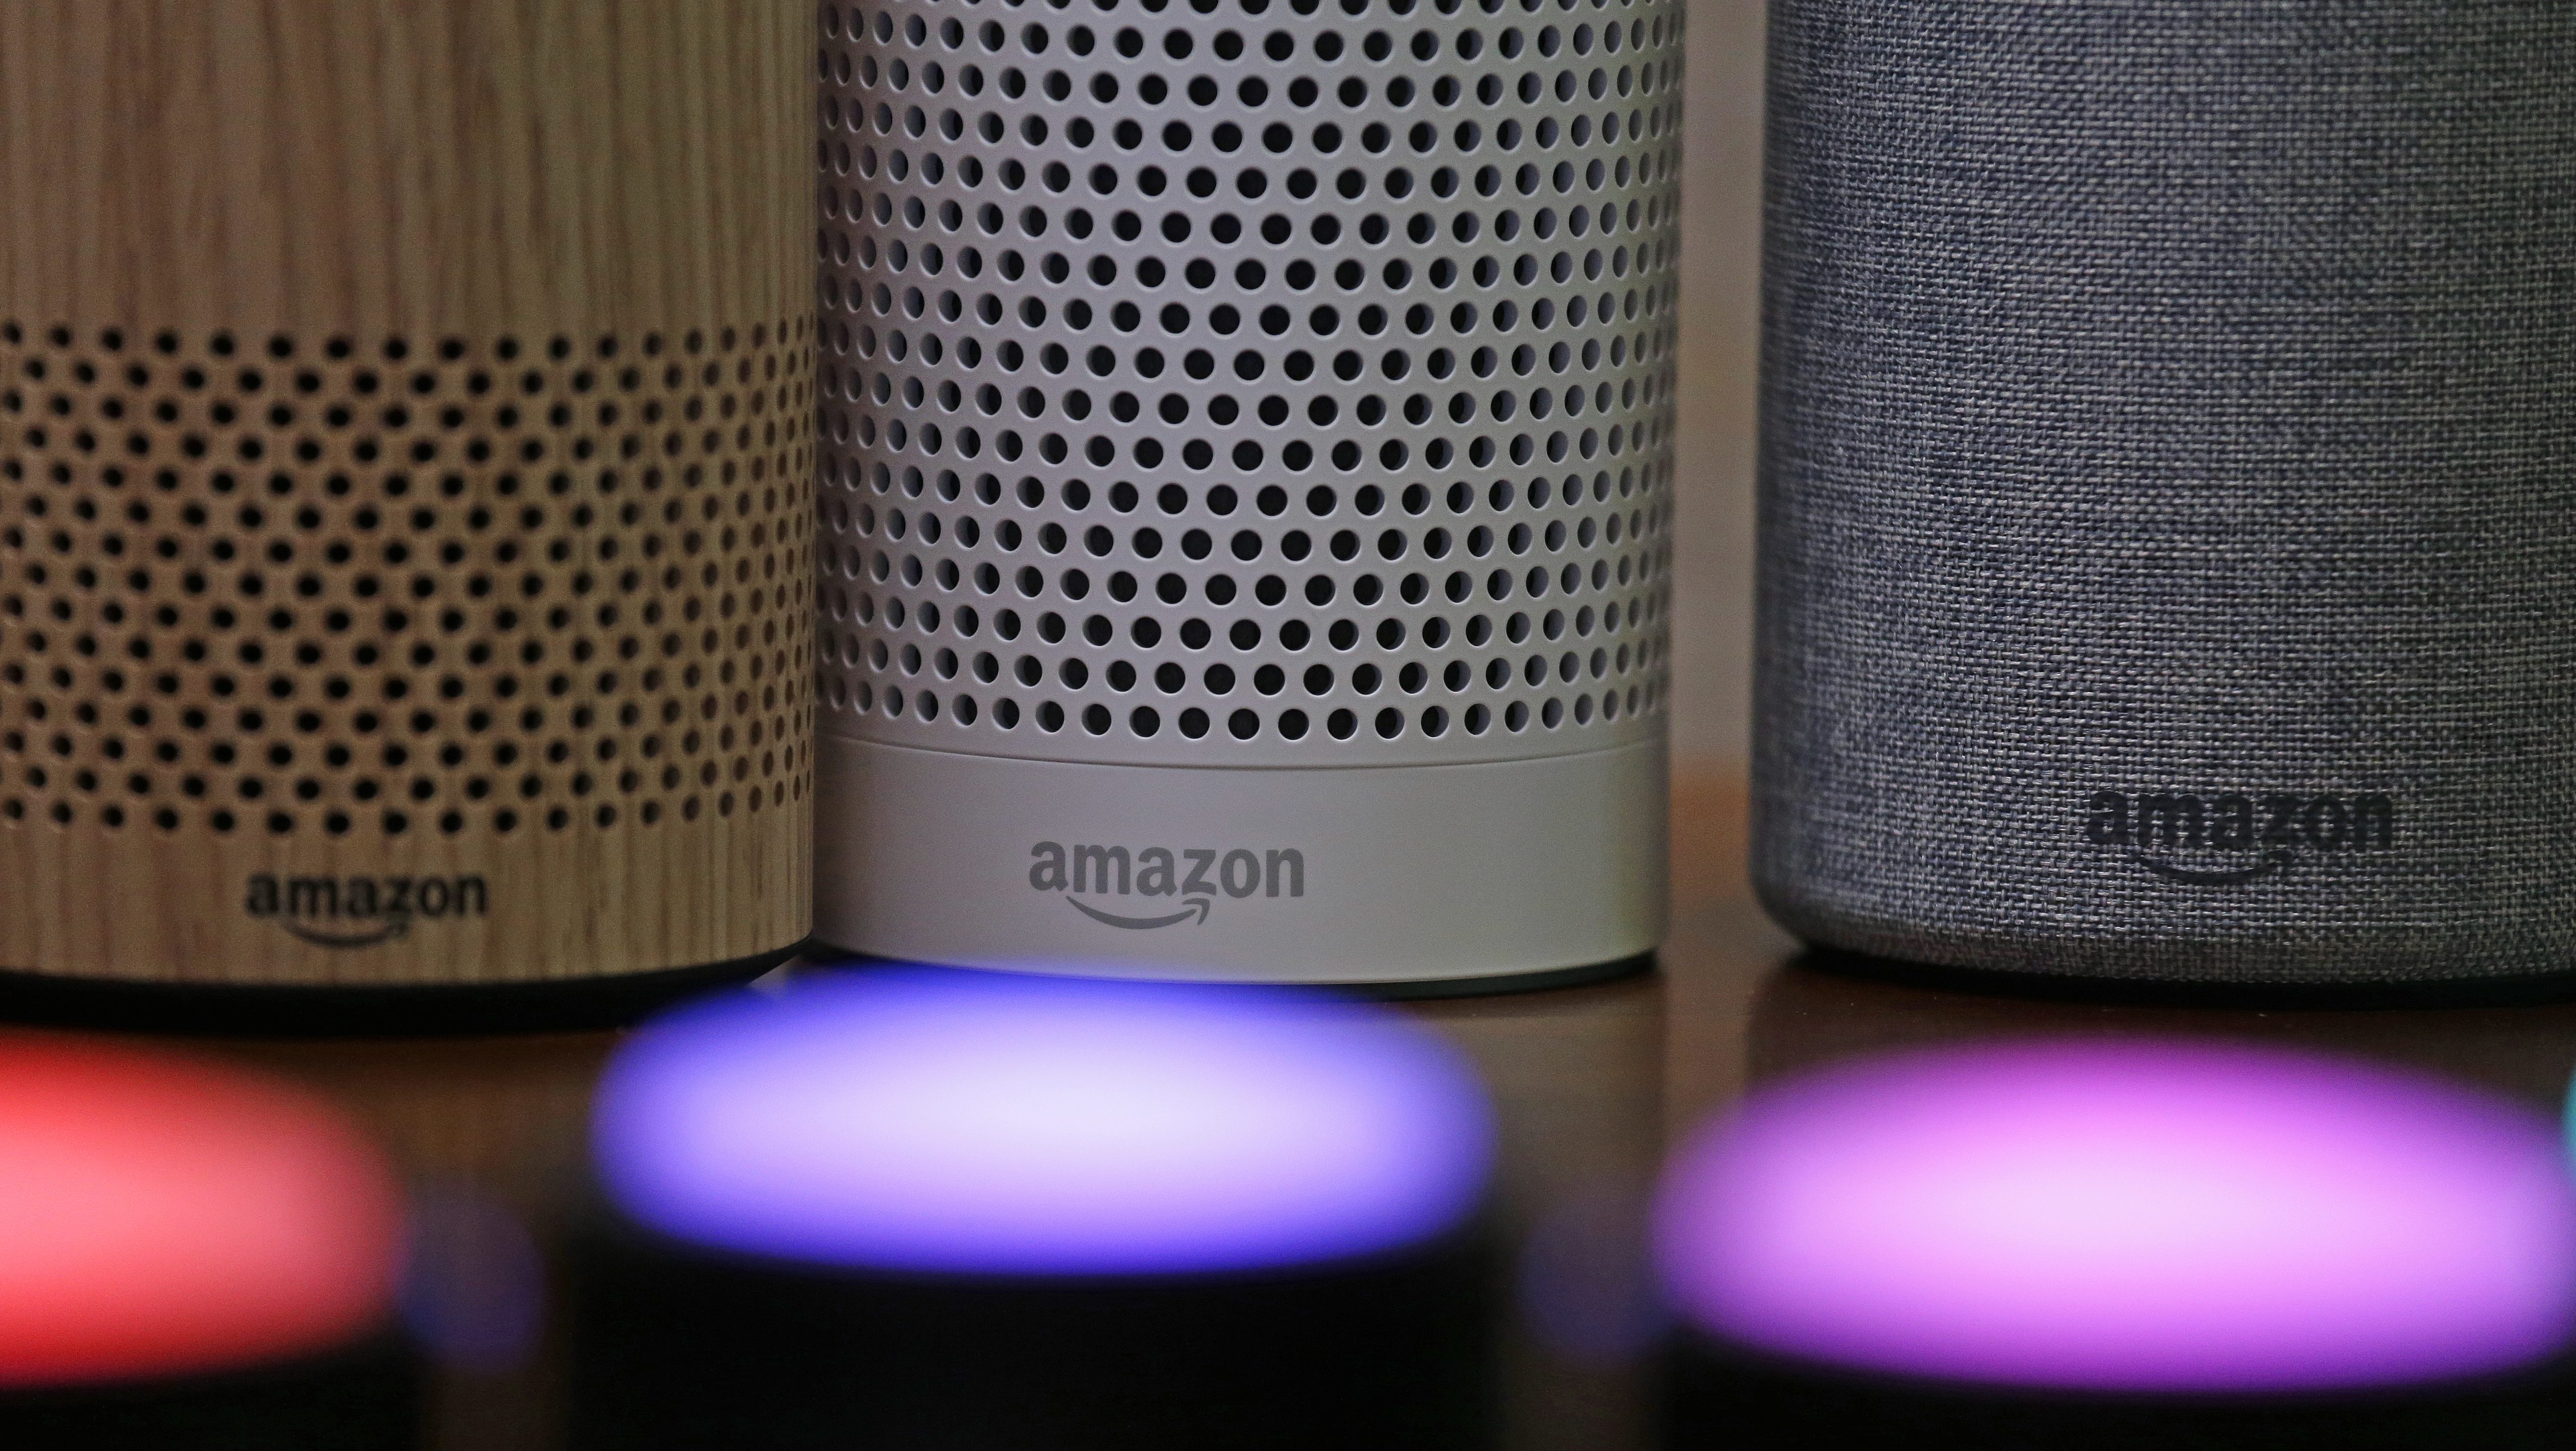 FILE - In this Wednesday, Sept. 27, 2017, file photo, Amazon Echo and Echo Plus devices, behind, sit near illuminated Echo Button devices during an event announcing several new Amazon products by the company, in Seattle. As people get voice-activated speakers and online security cameras for convenience and peace of mind, are they also giving hackers a key to their homes? Many devices from reputable manufacturers have safeguards built in, but safeguards aren't the same as guarantees.